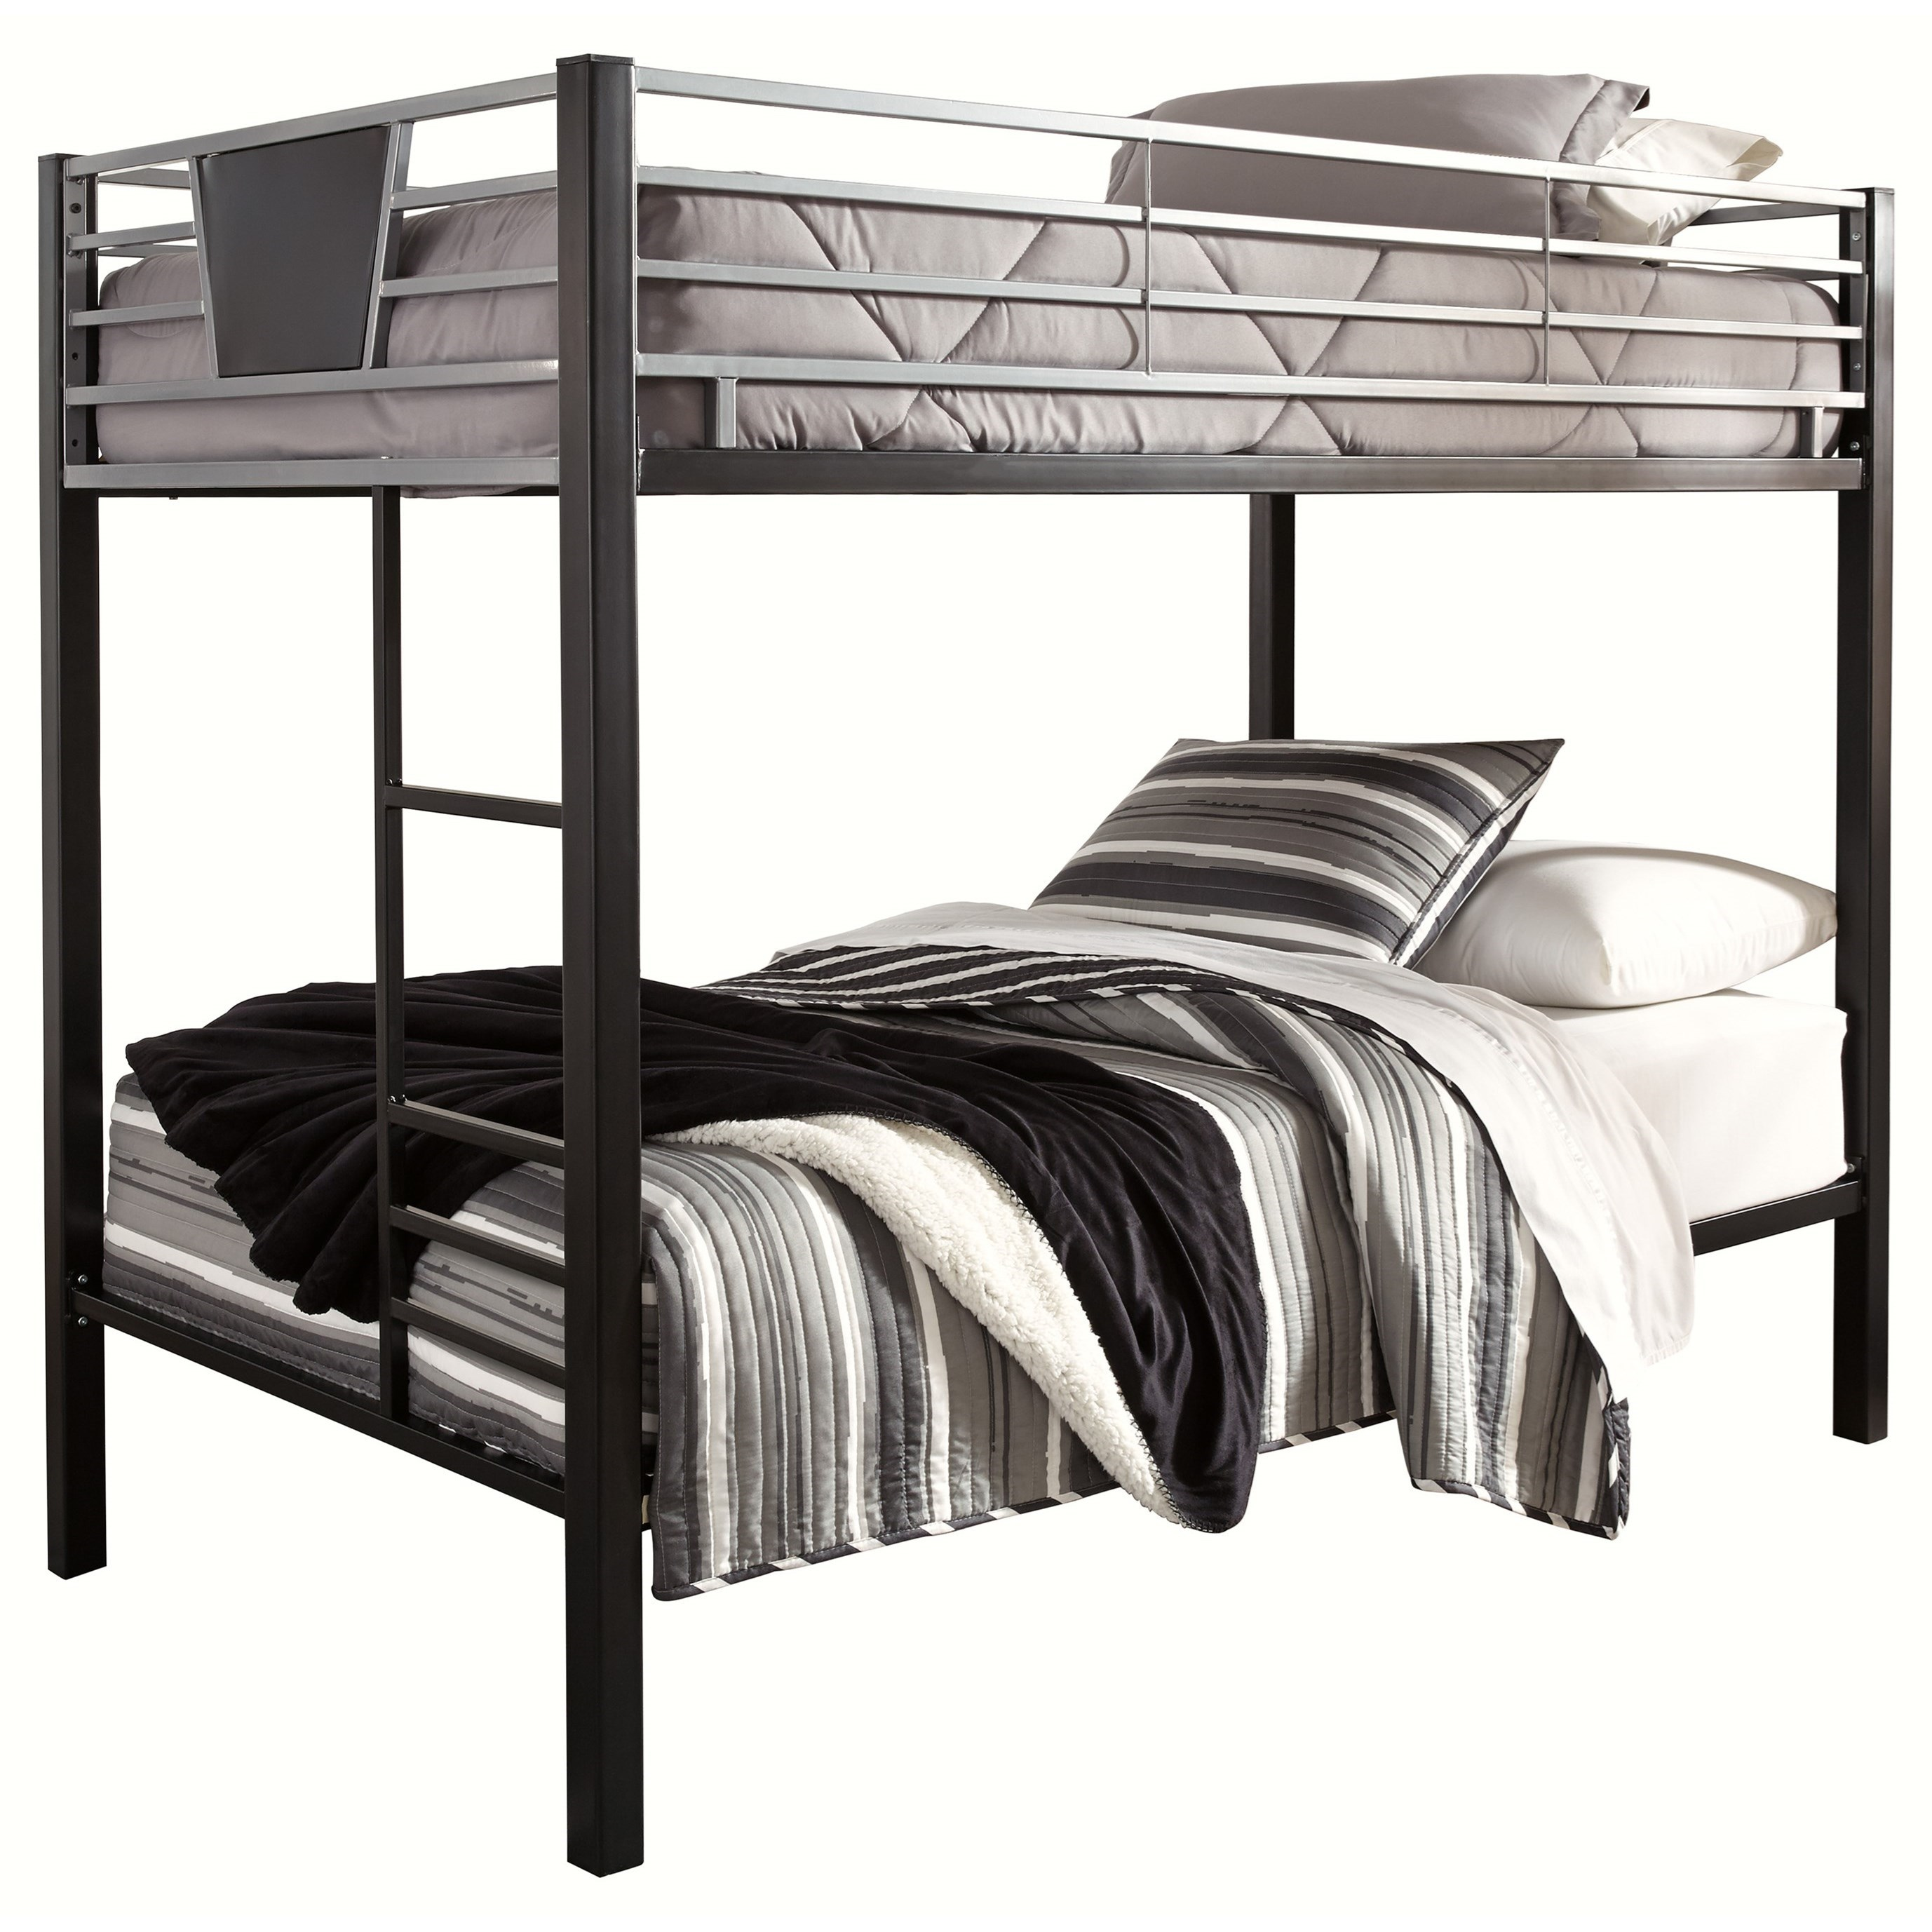 Dinsmore Twin/Twin Bunk Bed w/ Ladder by Signature Design by Ashley at Miller Waldrop Furniture and Decor